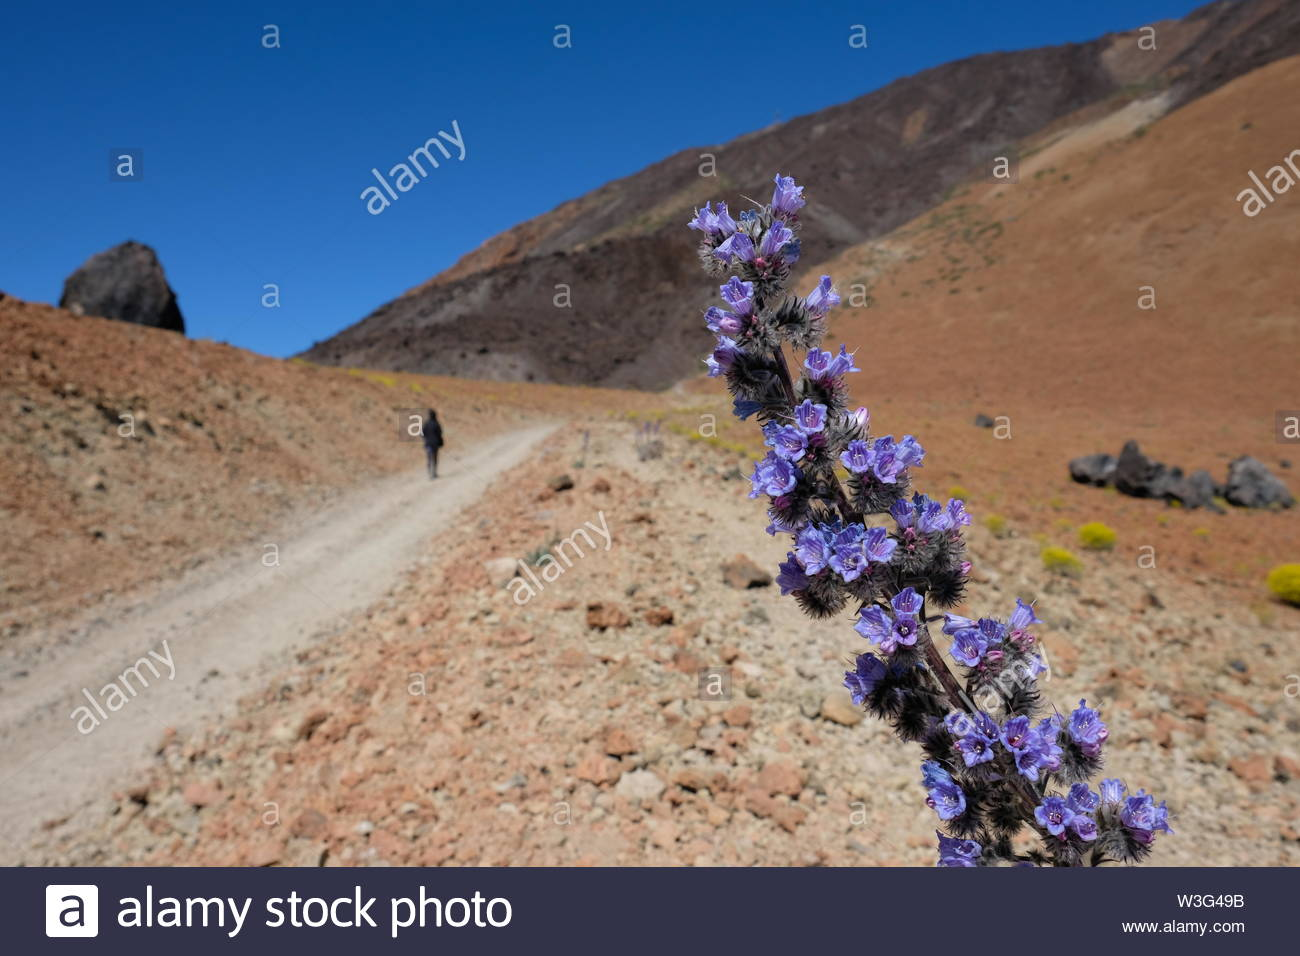 Pink flowers with blurred hiker on background and copy space - Stock Image